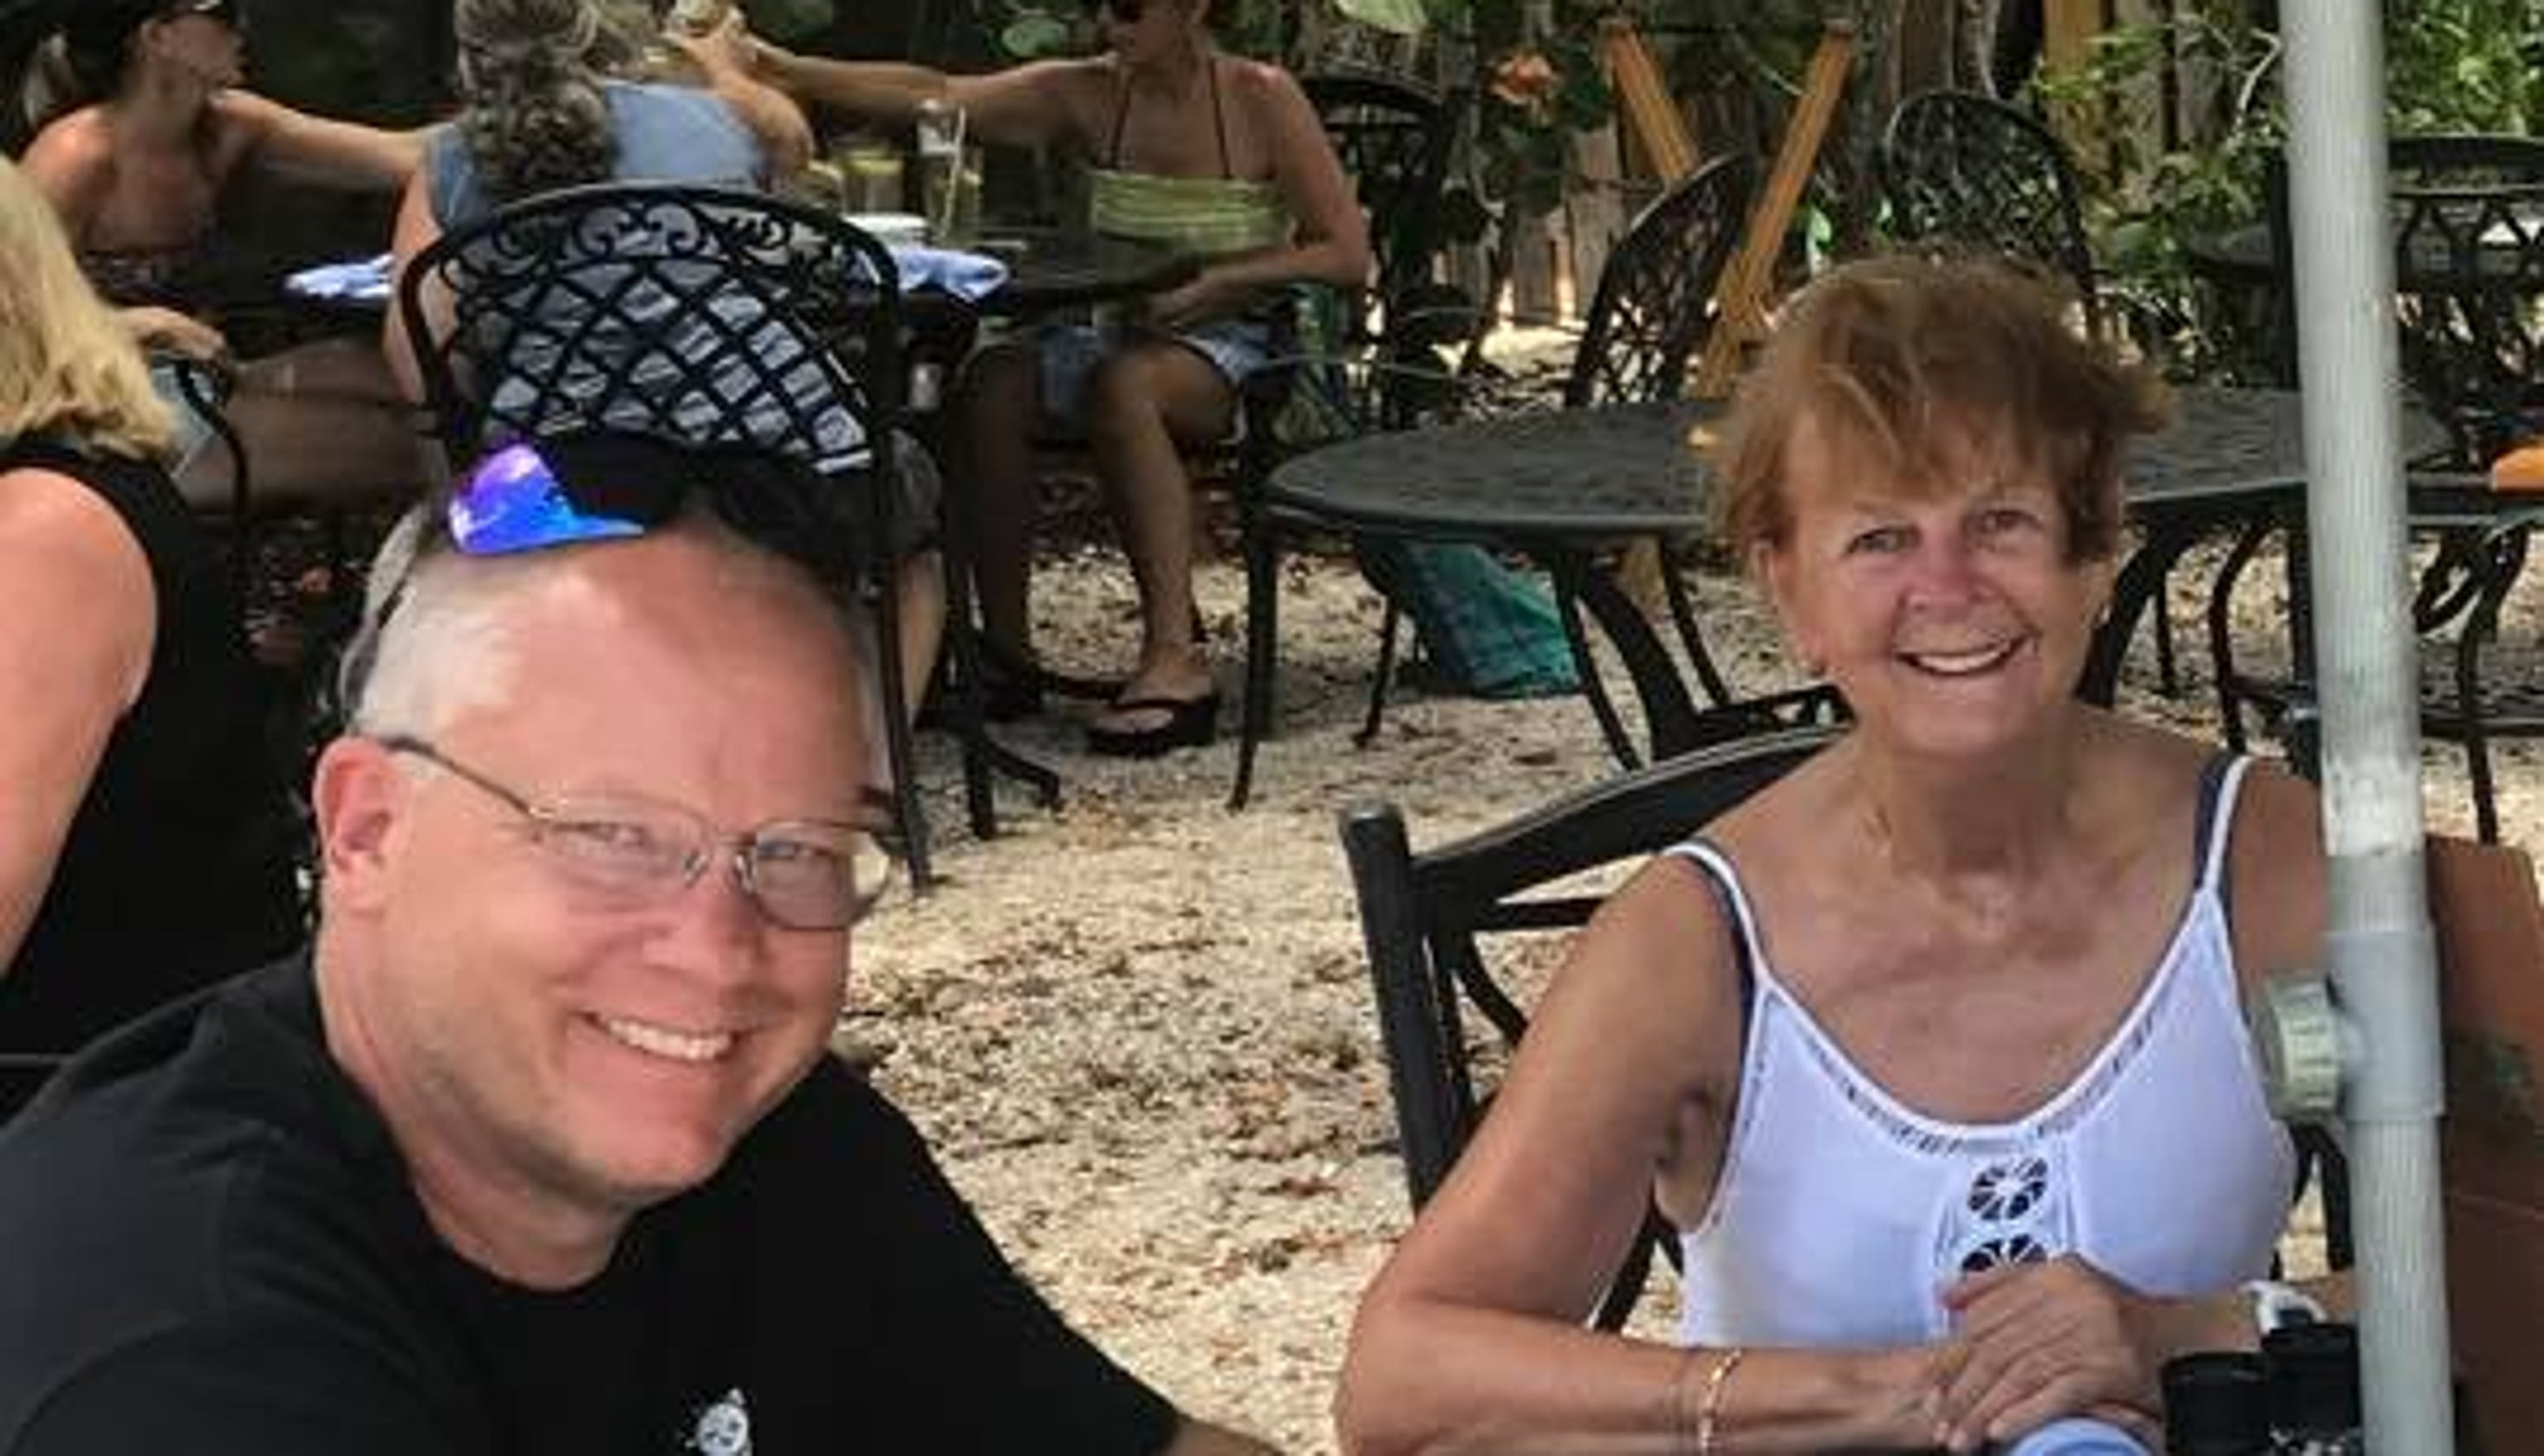 Flesh-eating bacteria: Florida woman dies after beach trip, family says